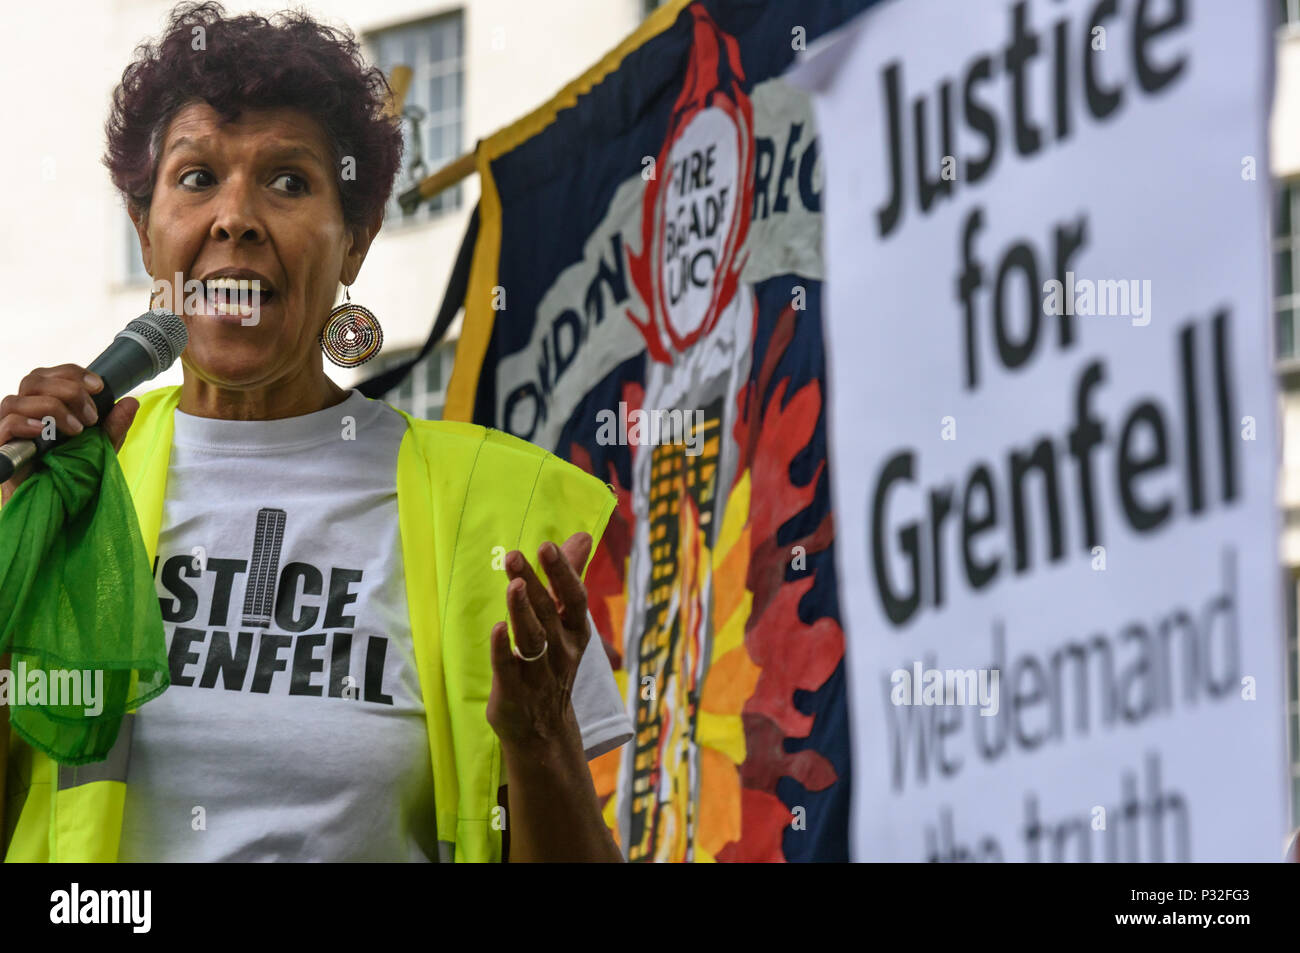 London, UK. 16th June 2018. Moyra Samuels from Justice4Grenfell speaks at the protest at Downing St in solidarity with the 72 killed and the survivors of the Grenfell fire a year ago organised by Justice4Grenfell and the FBU (Fire Brigades Union.) After some speeches they marched to the Home Office for a brief protest before returning to Downing St for more speeches. m Credit: Peter Marshall/Alamy Live News - Stock Image